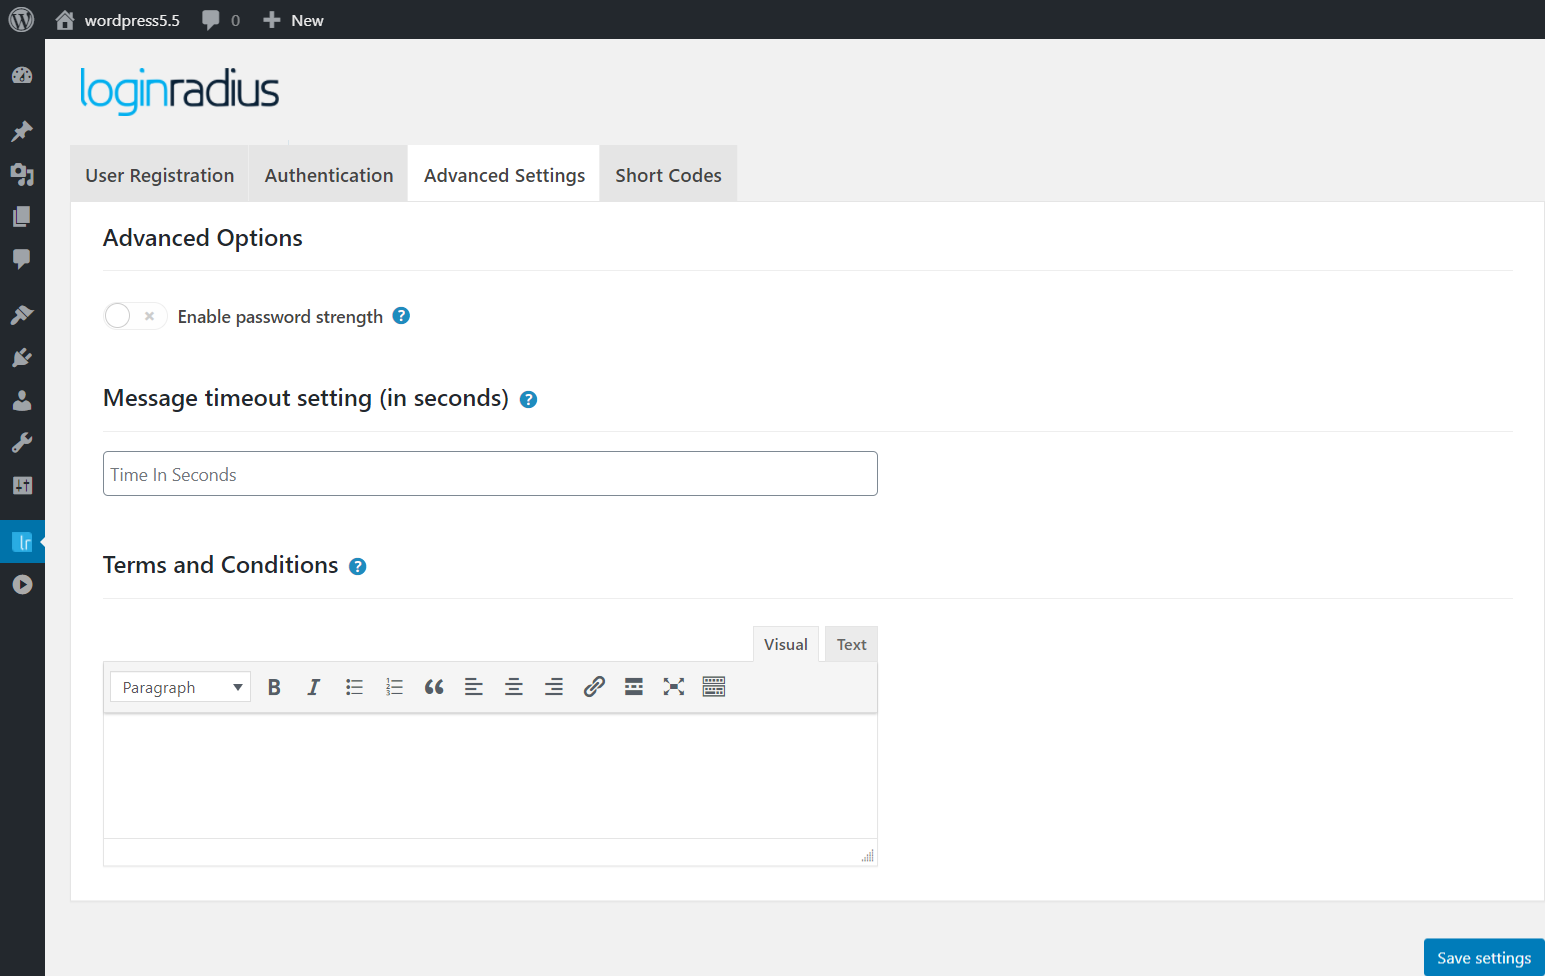 loginradius-for-wordpress screenshot 3